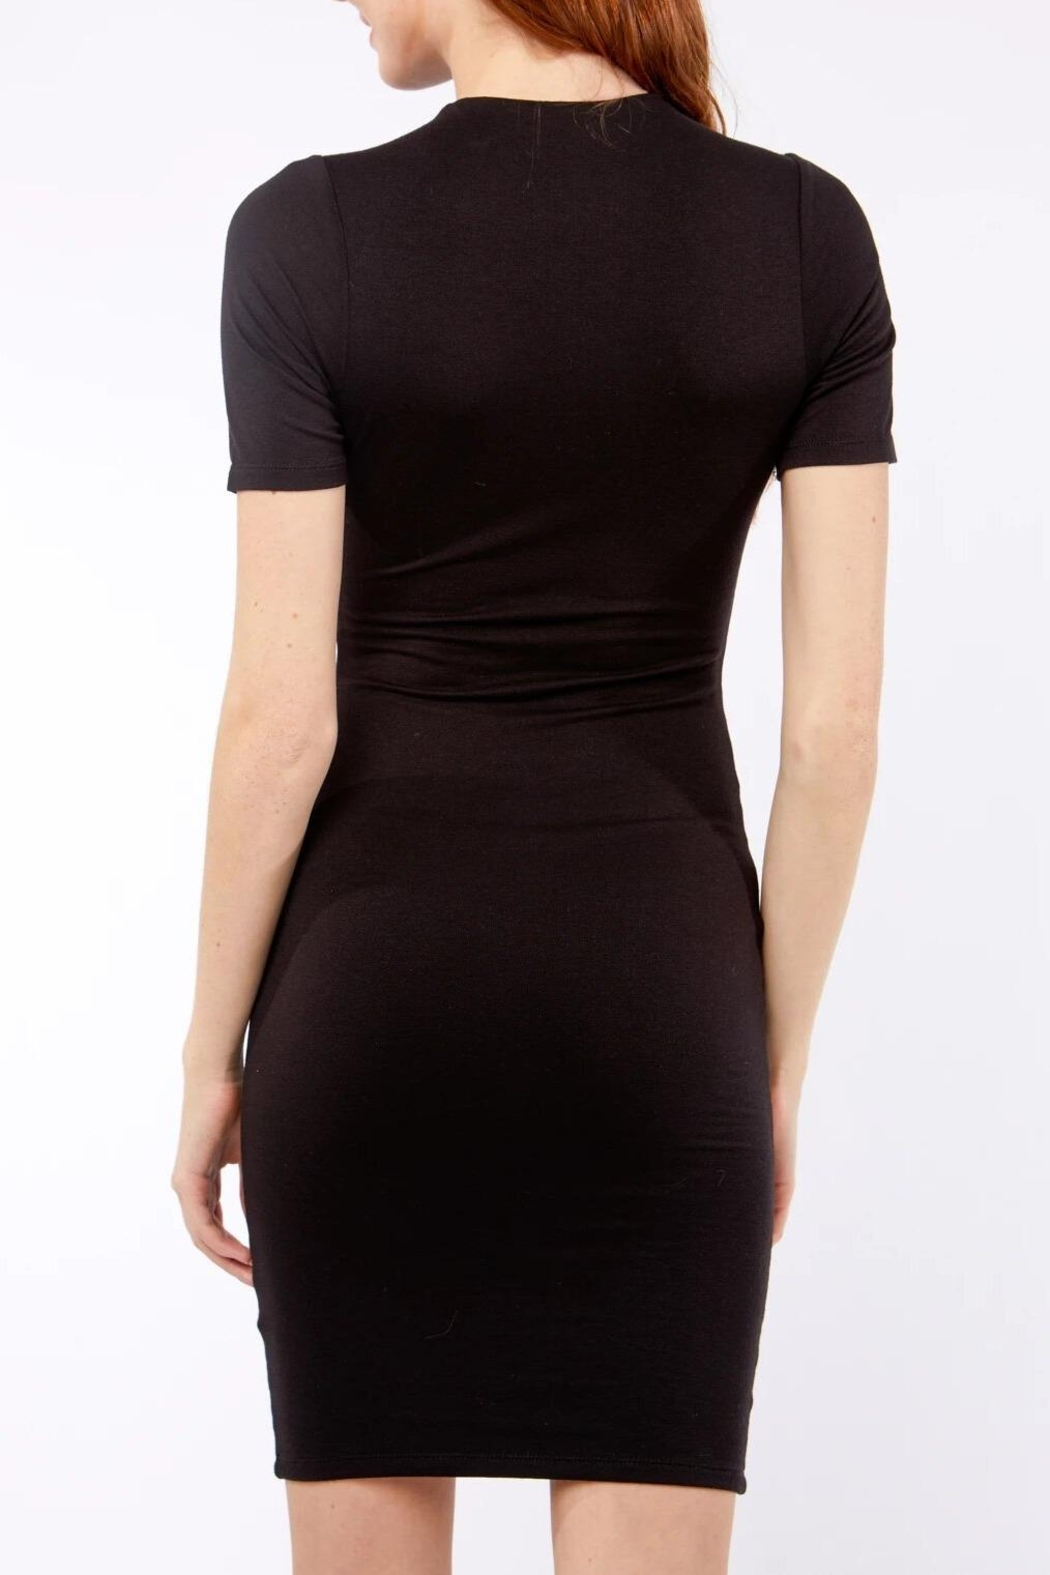 Love Tree Classic Luxe Body Con Little Black Dress - Side Cropped Image